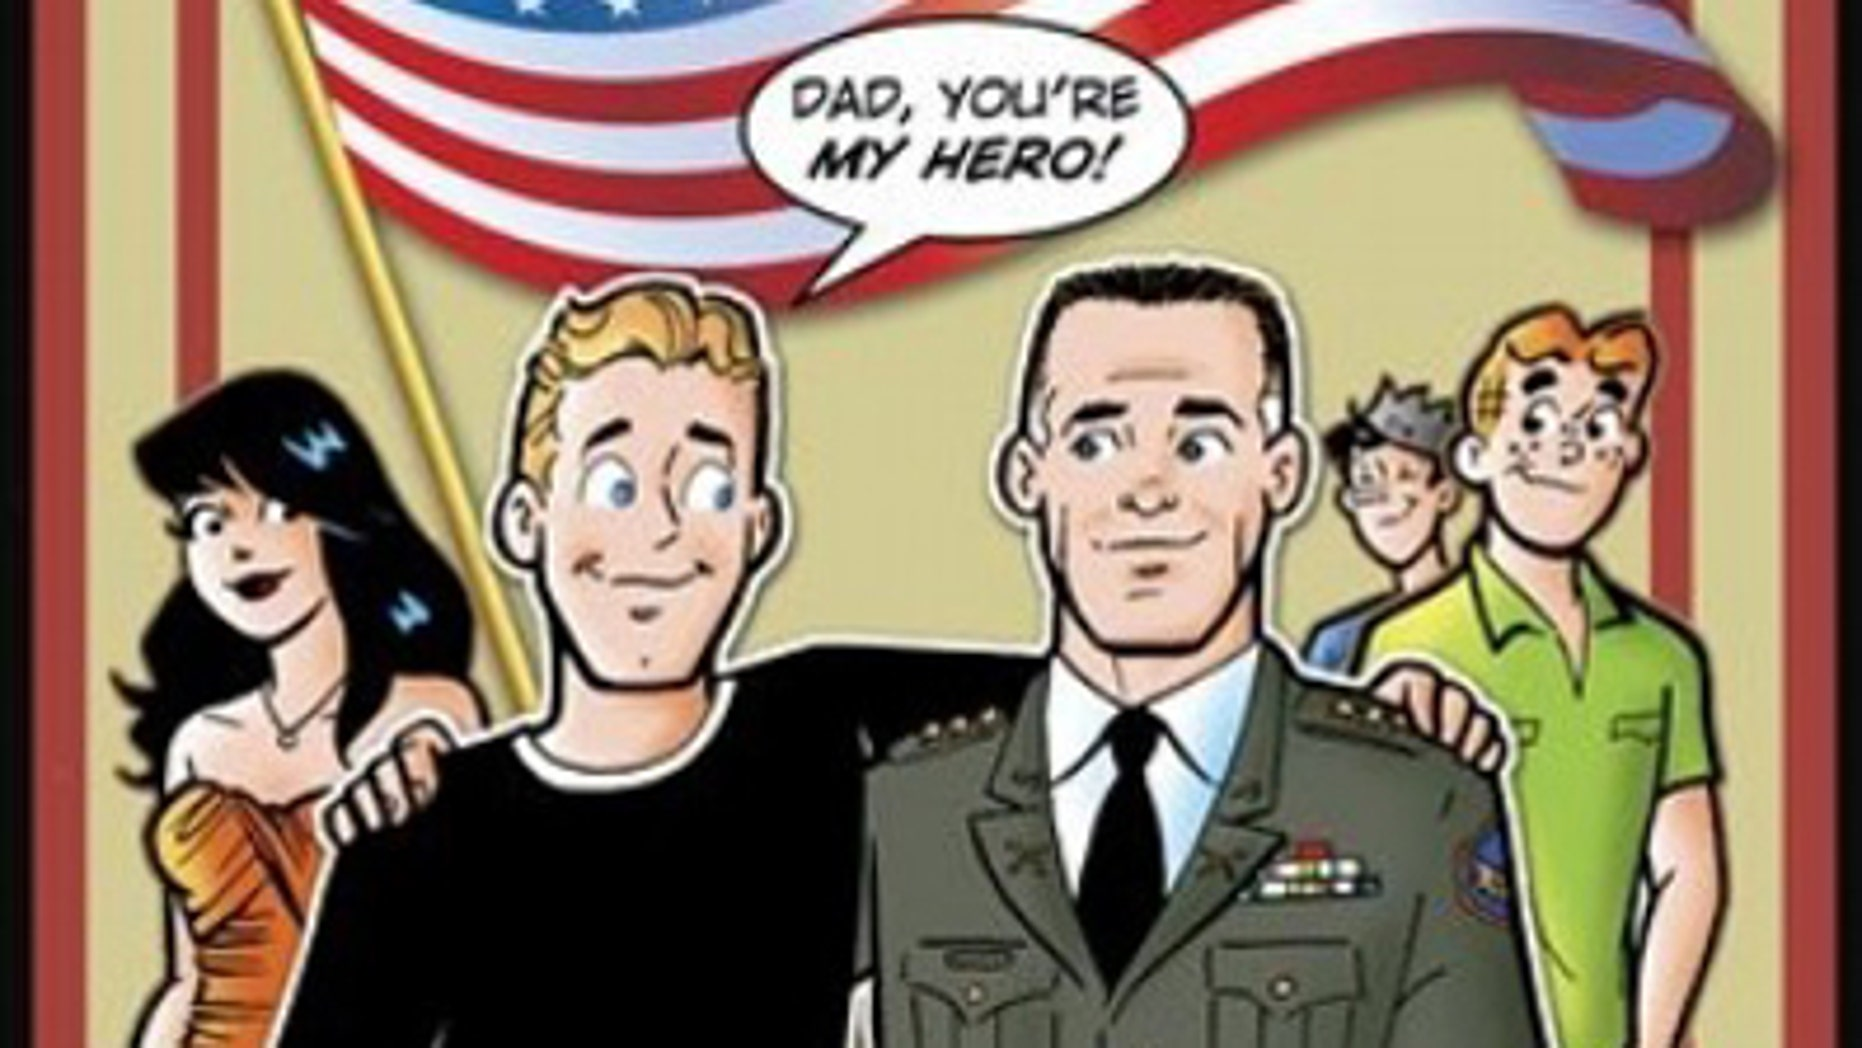 In this comic book cover image released by Archie Comics, Kevin Keller, left, the series' first openly gay character, is shown on the cover with his father, a retired Army colonel. Keller is the focus of an upcoming gay marriage storyline in Life With Archie that has drawn mixed reactions from critics.